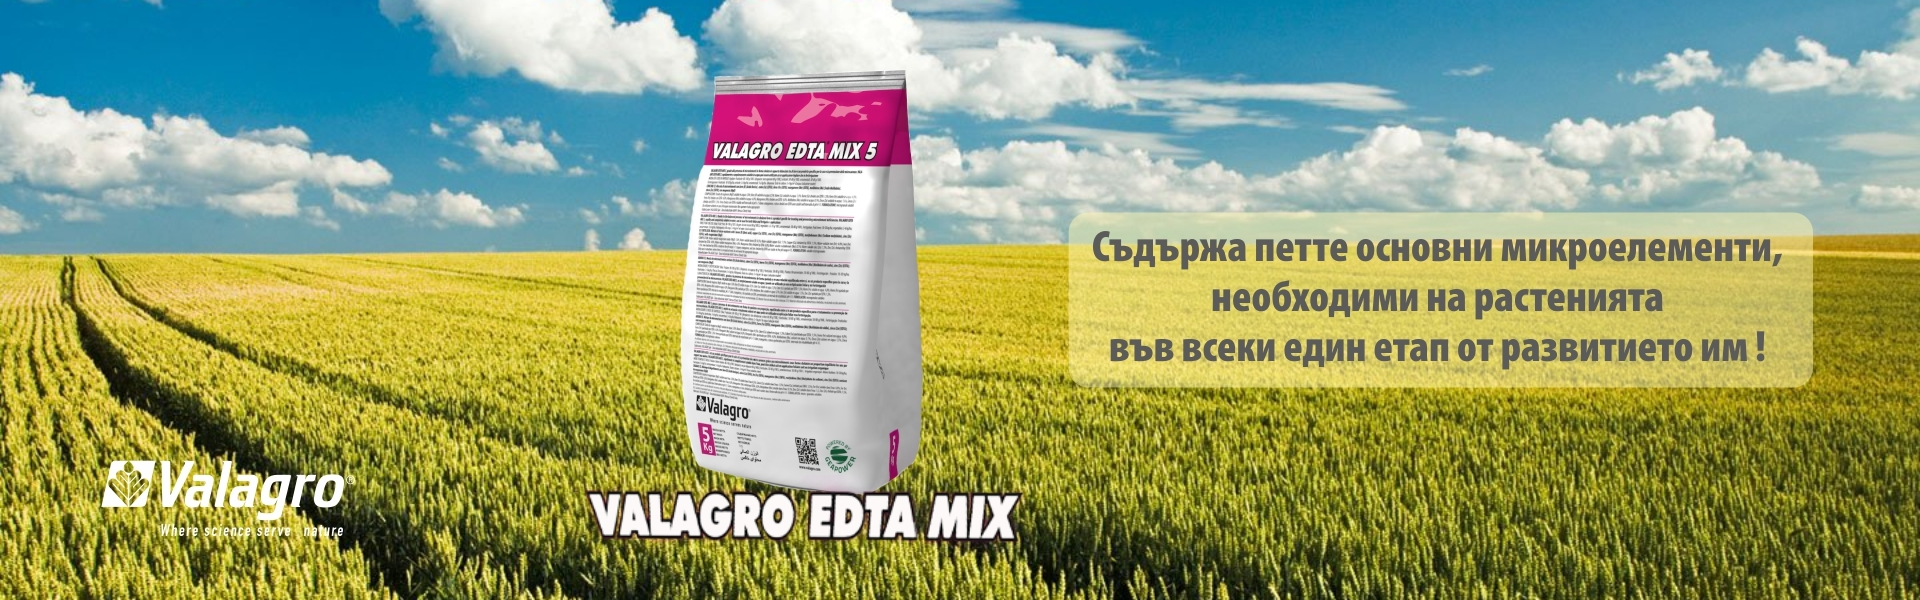 Valagro EDTA Mix